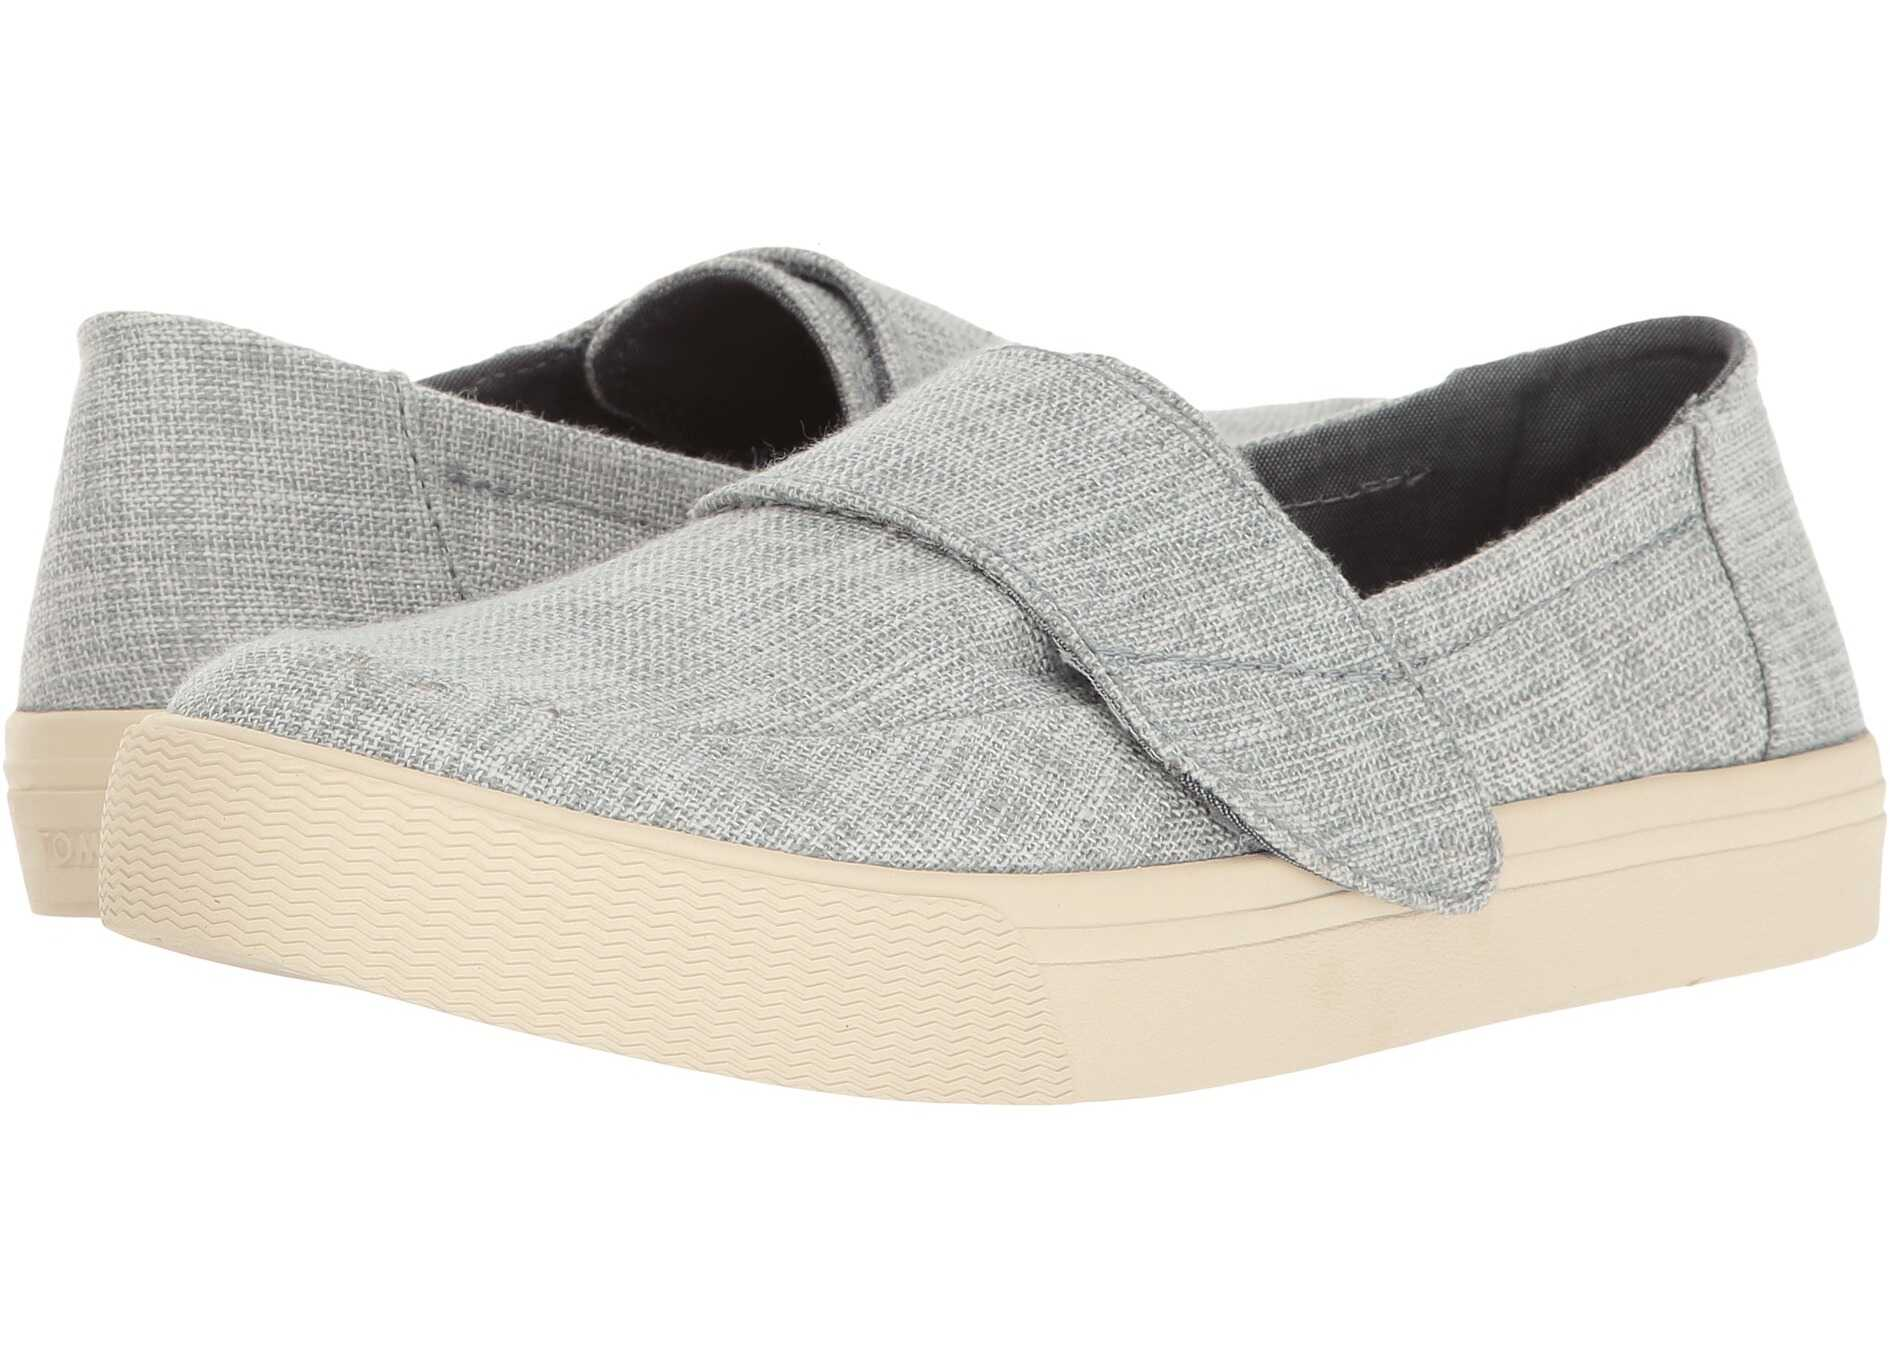 TOMS Altair Slip-On Drizzle Grey Lurex Woven